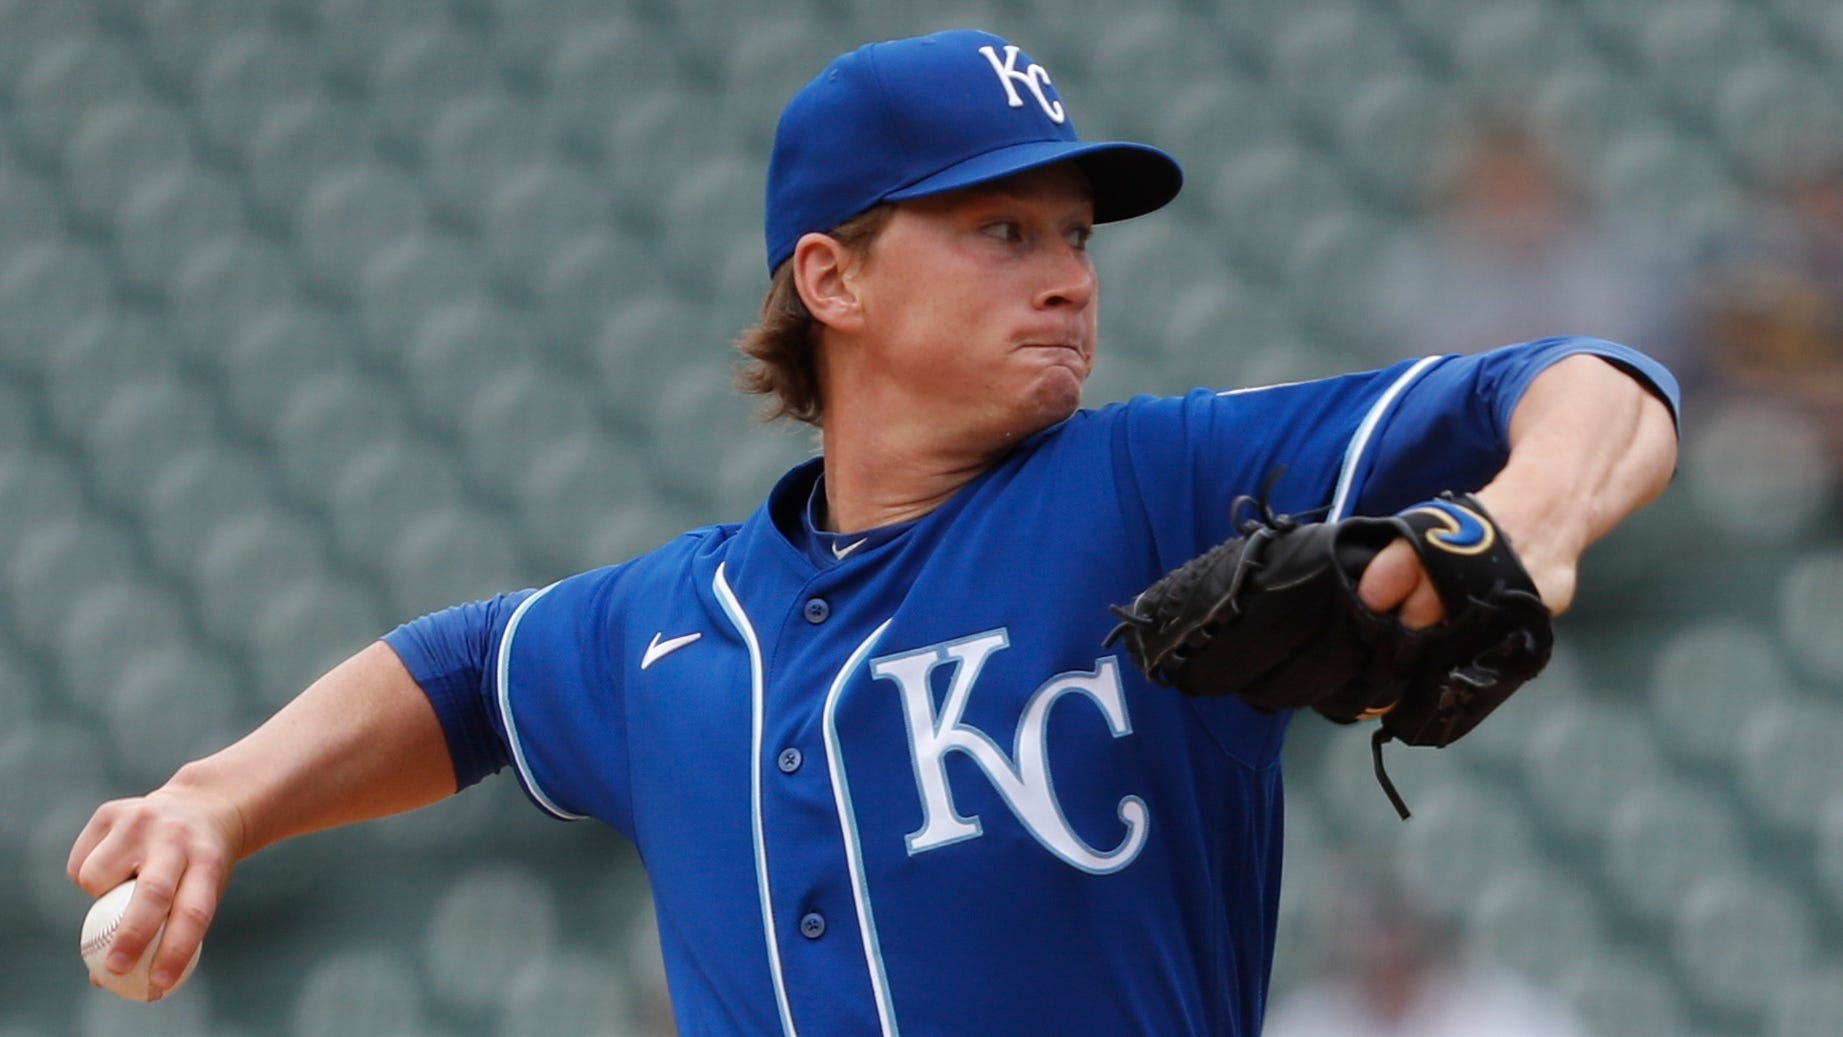 Kansas City Royals' Brady Singer pitches to a Tigers batter during the first inning.